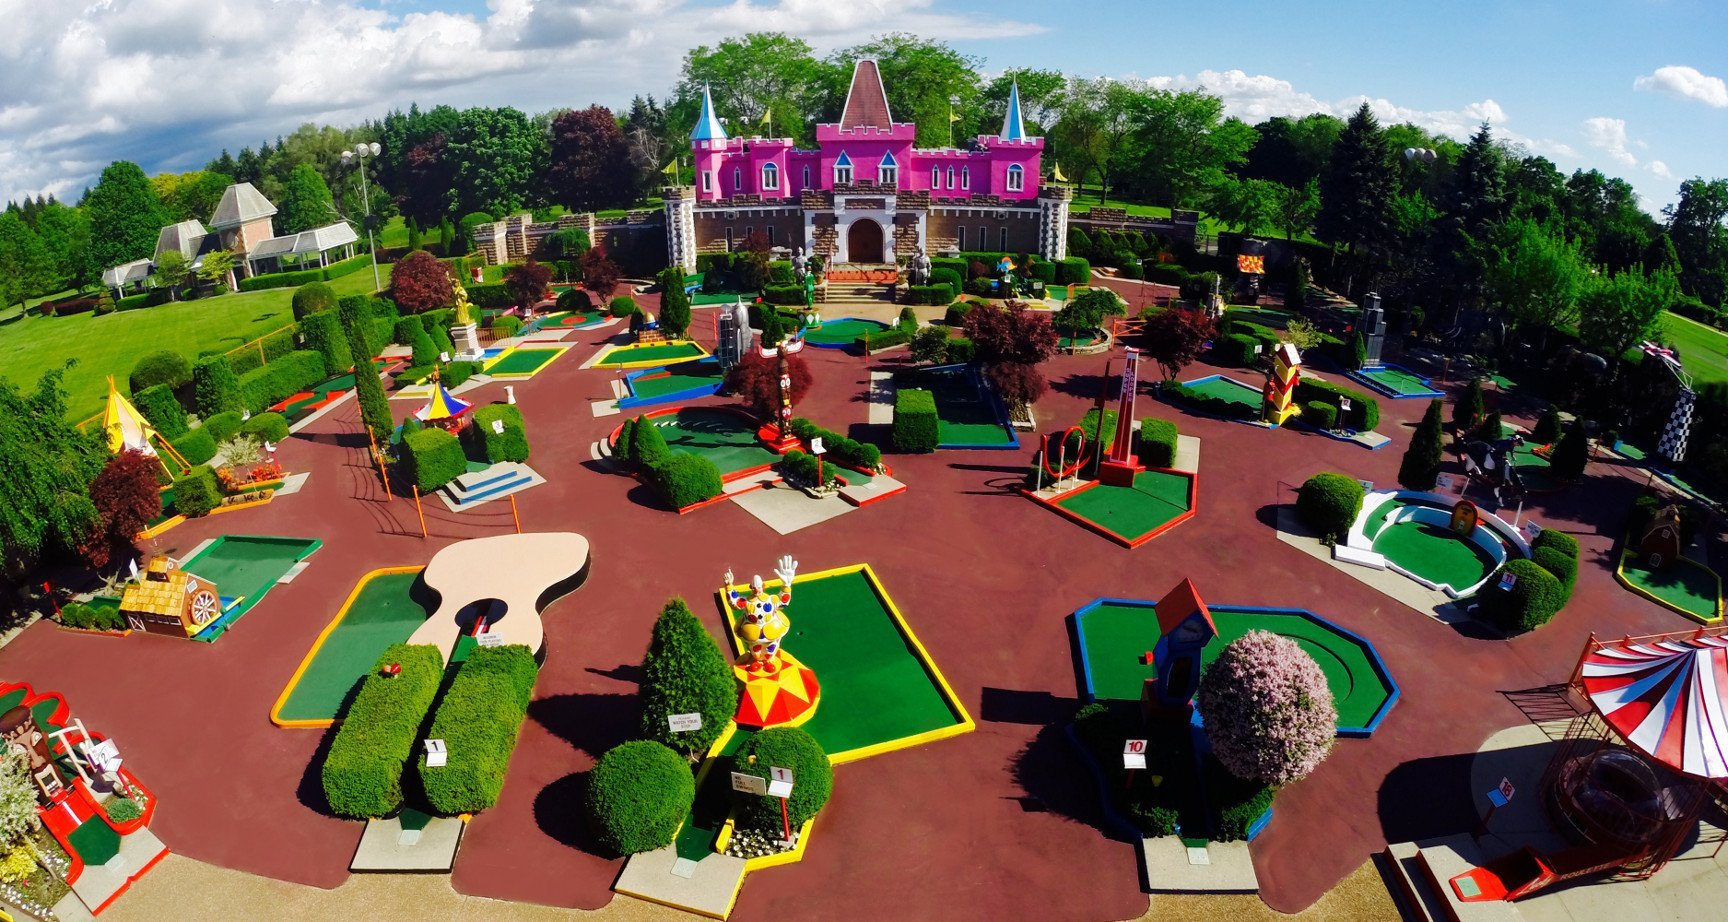 Employee Retention<br> Mini-Golf and Go-Kart Centers Share their Strategies to Get Employees to Stay